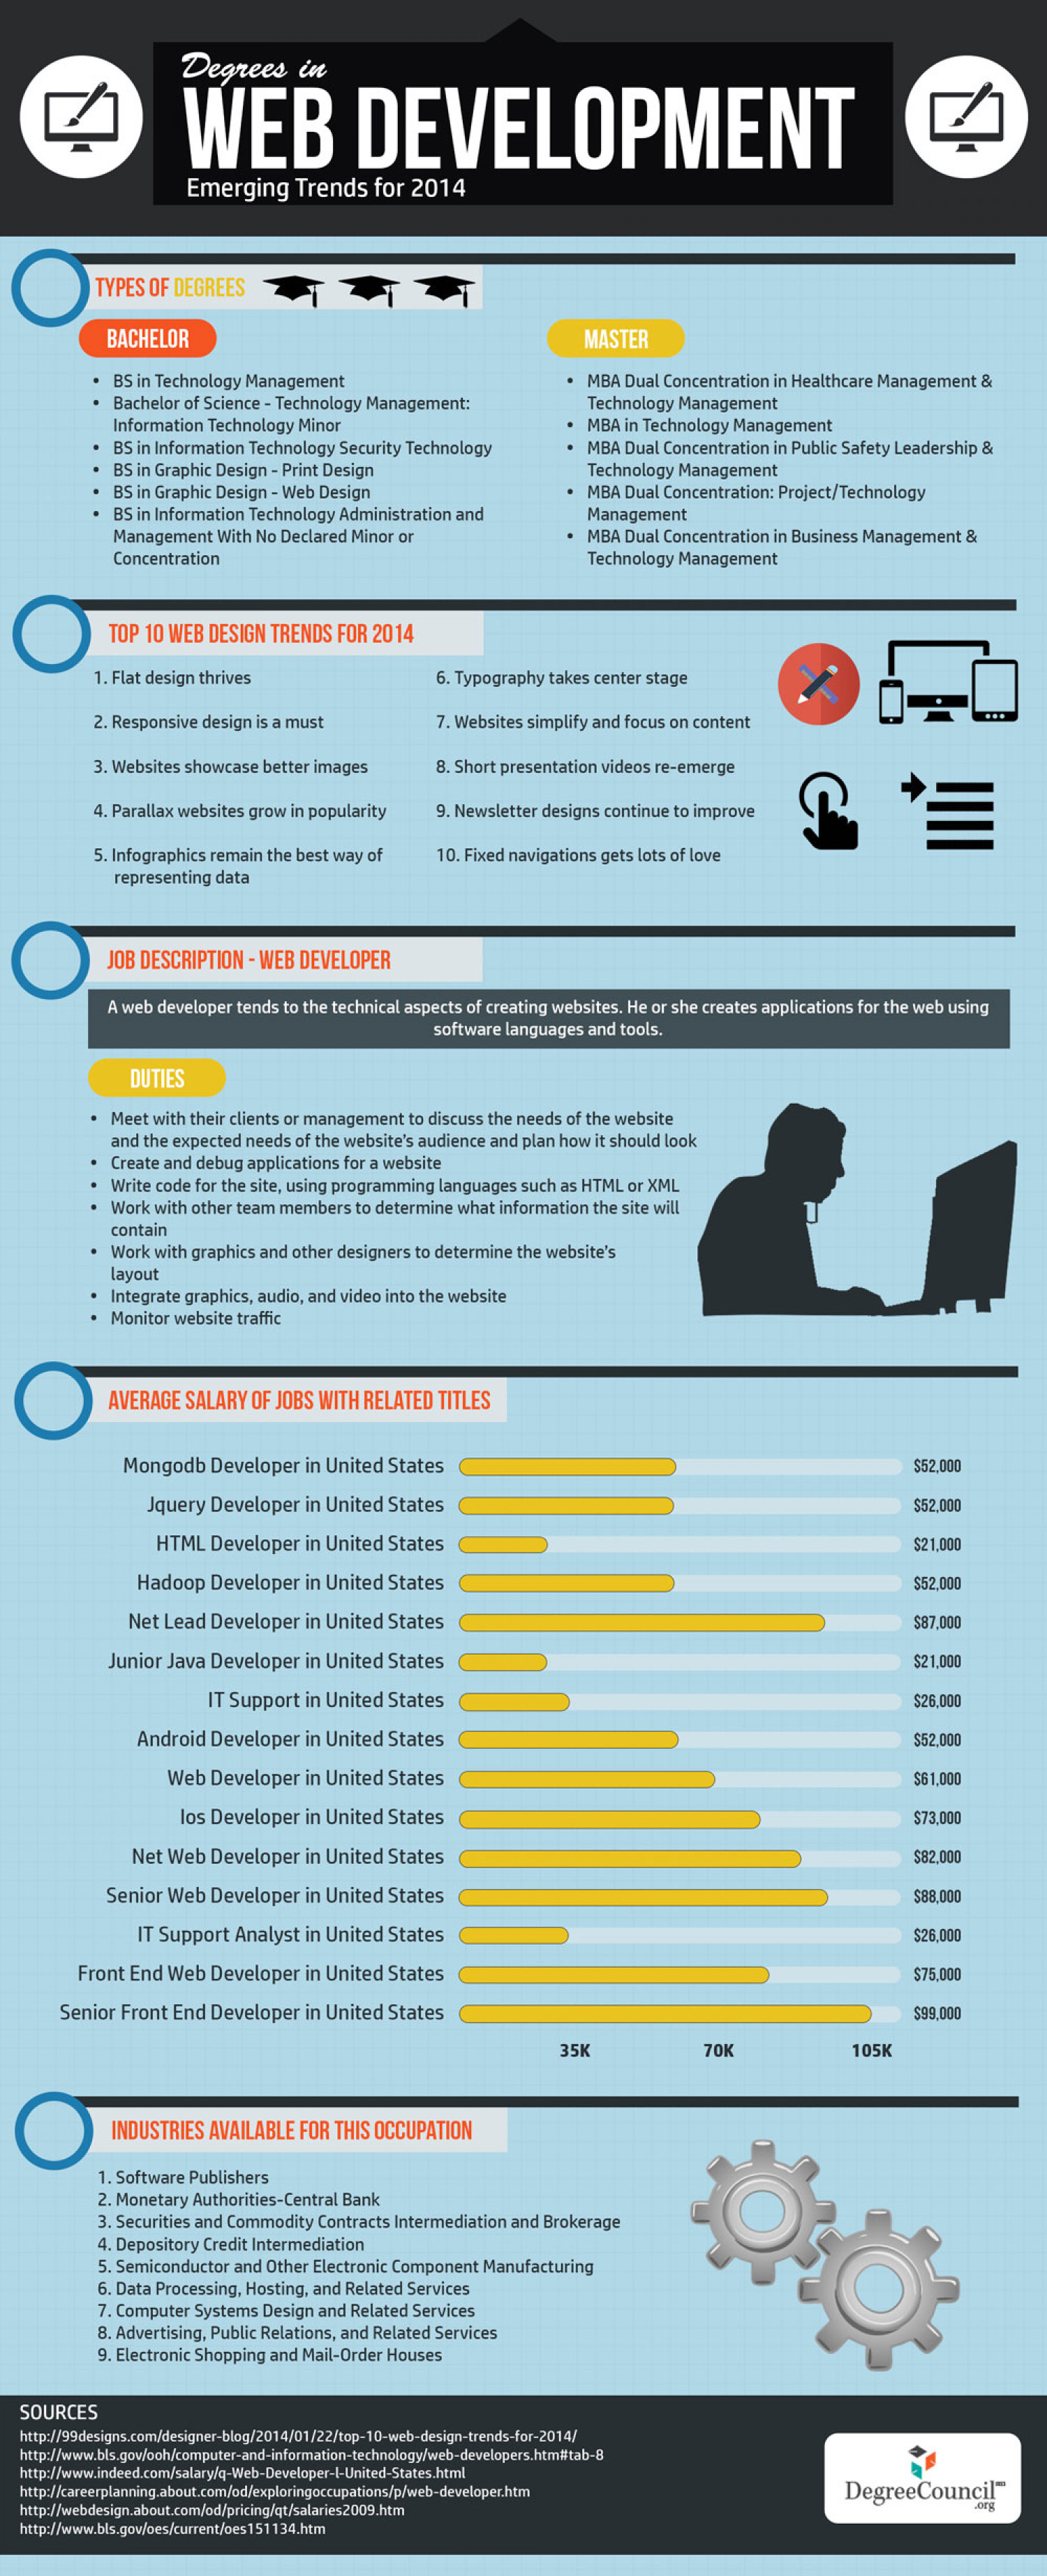 Degrees in Web Development - Emerging Trends for 2014 Infographic